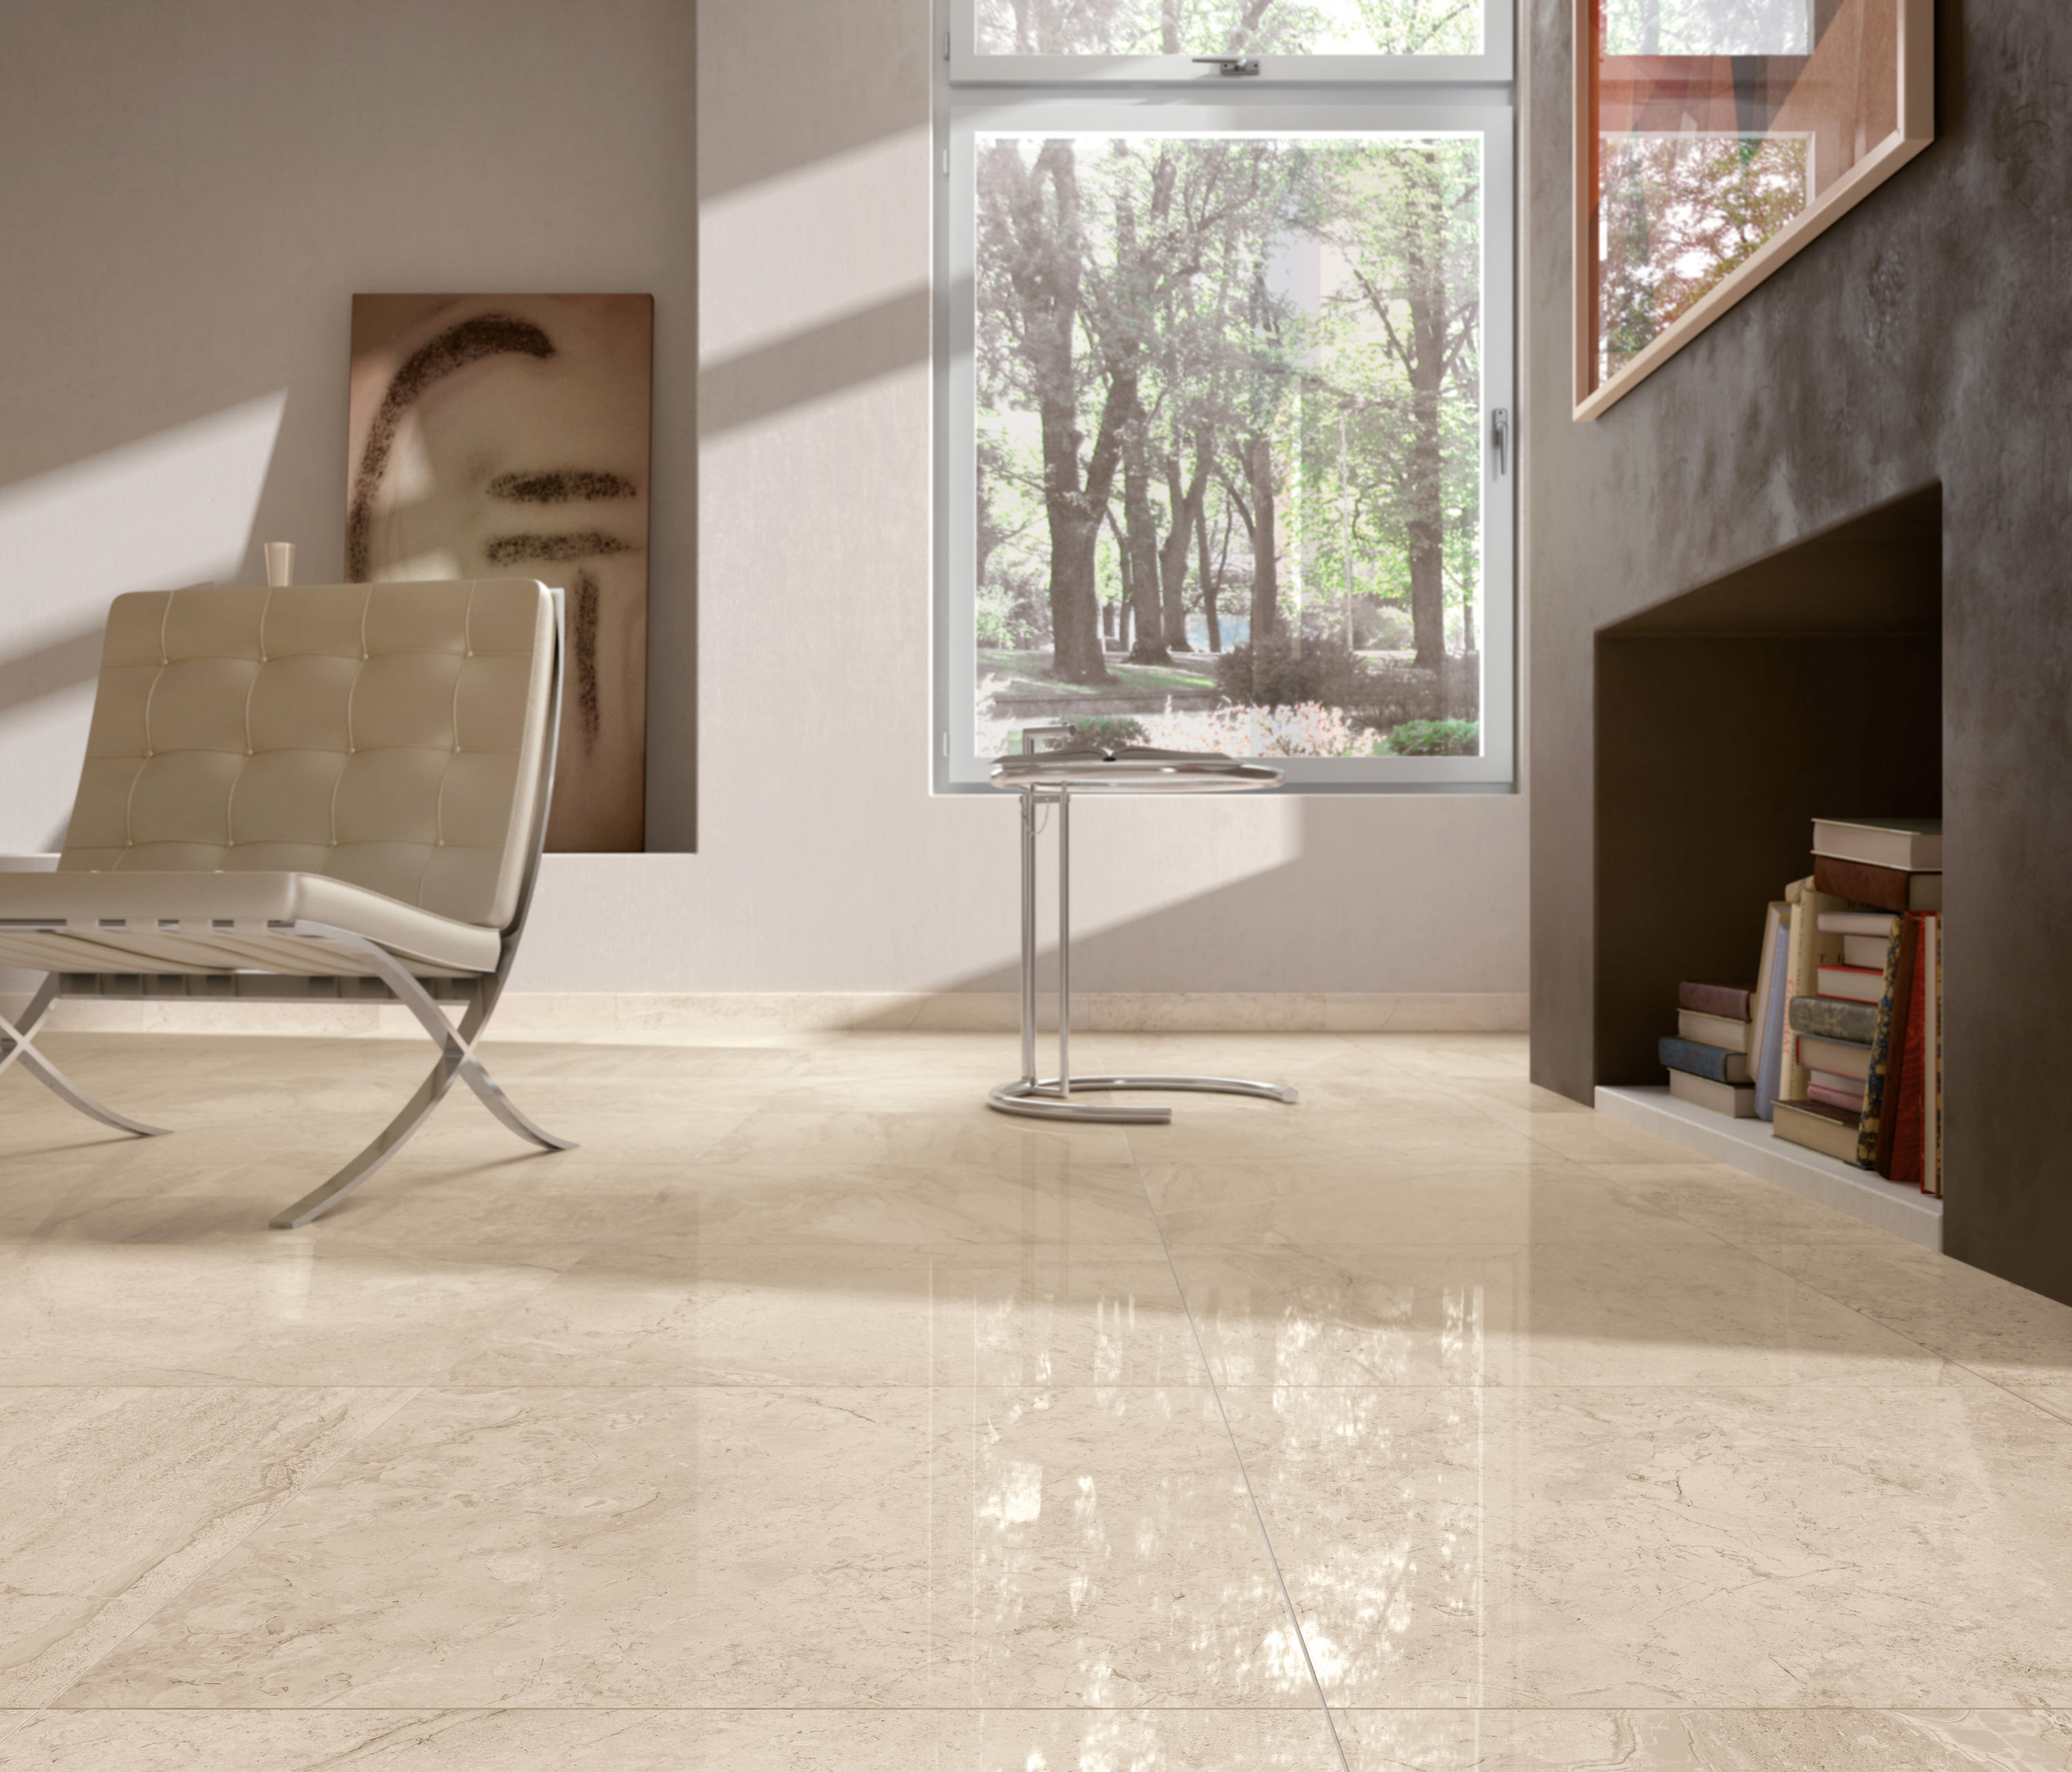 Gotha bronze floor tiles from ceramiche supergres architonic ambient images dailygadgetfo Gallery